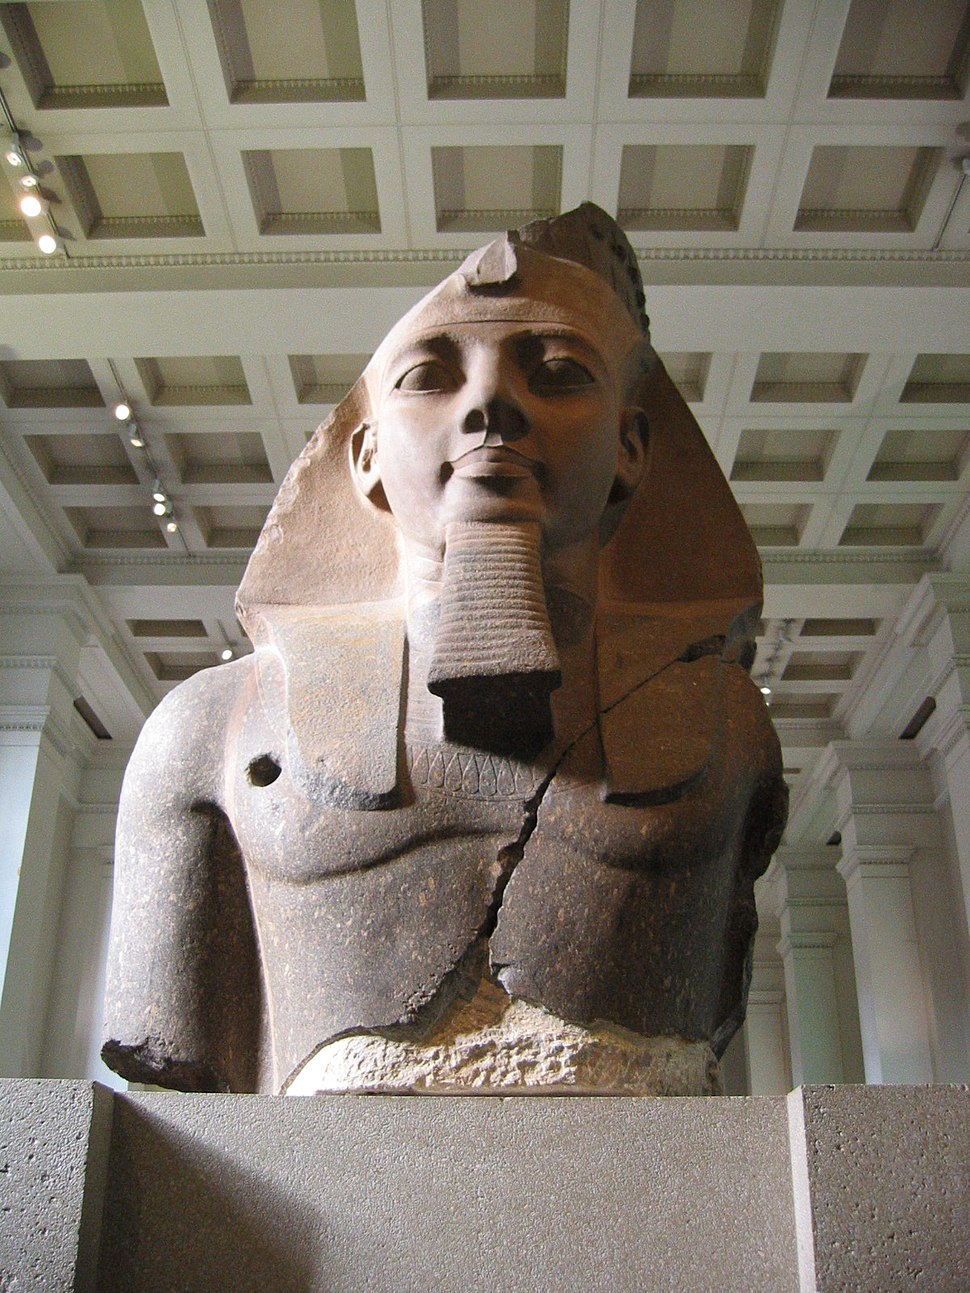 BM, AES Egyptian Sulpture ~ Colossal bust of Ramesses II, the %27Younger Memnon%27 (1250 BC) (Room 4)